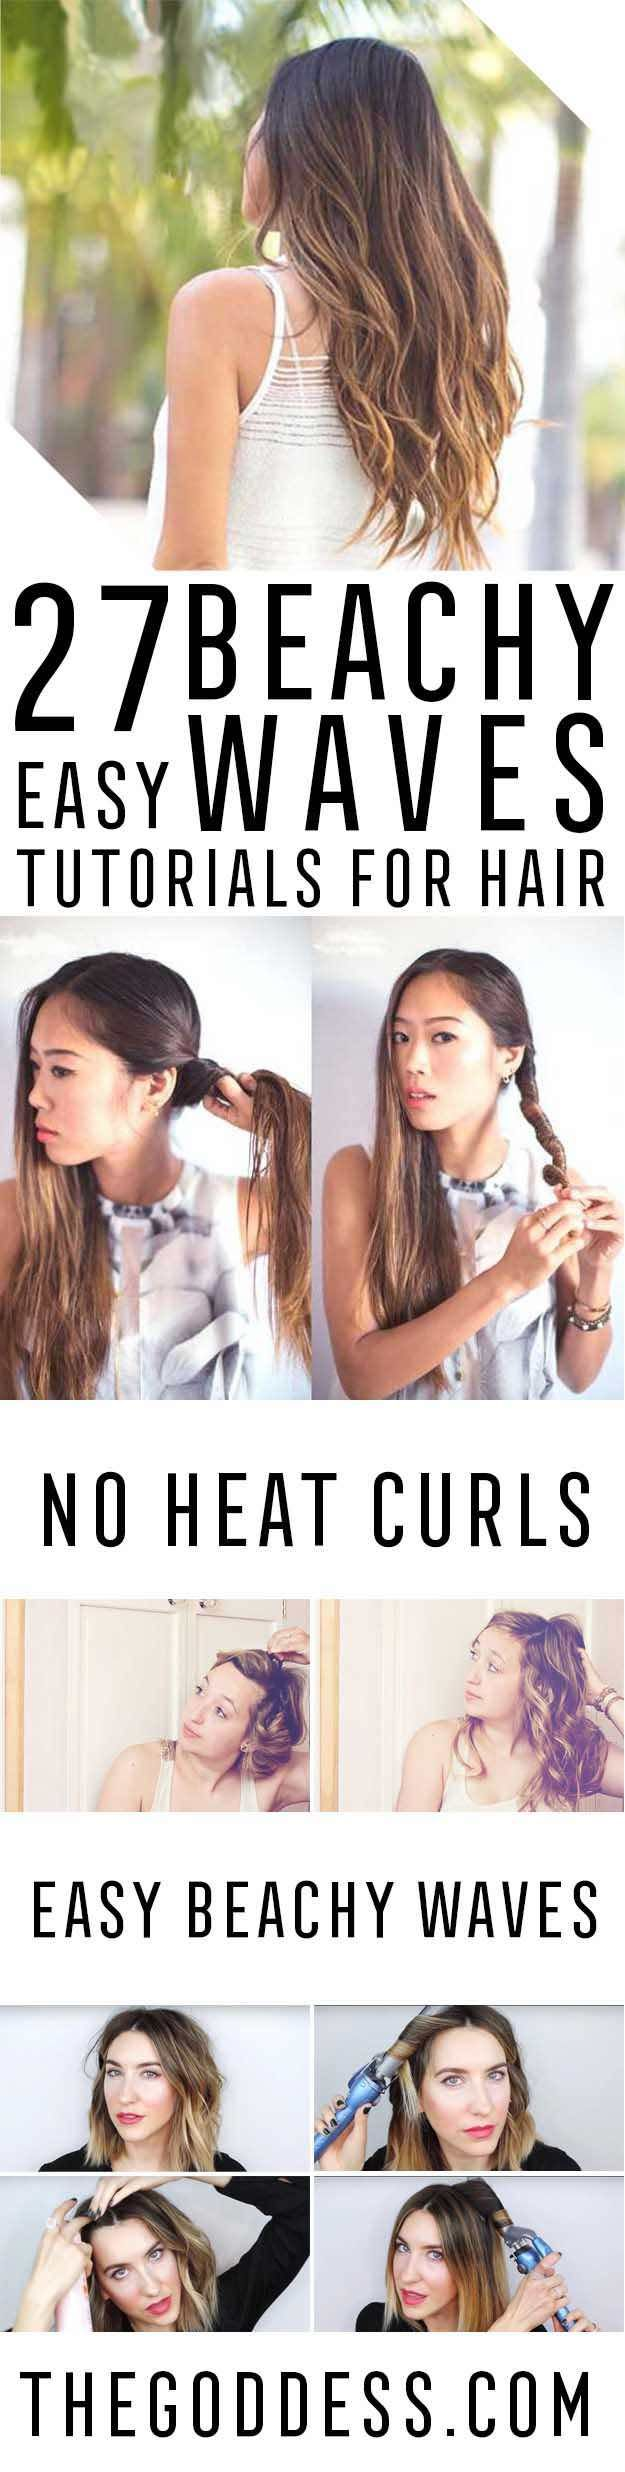 Easy Beachy Waves Tutorials for Hair - DIY And Easy Step By Step Tutorial For Sh...